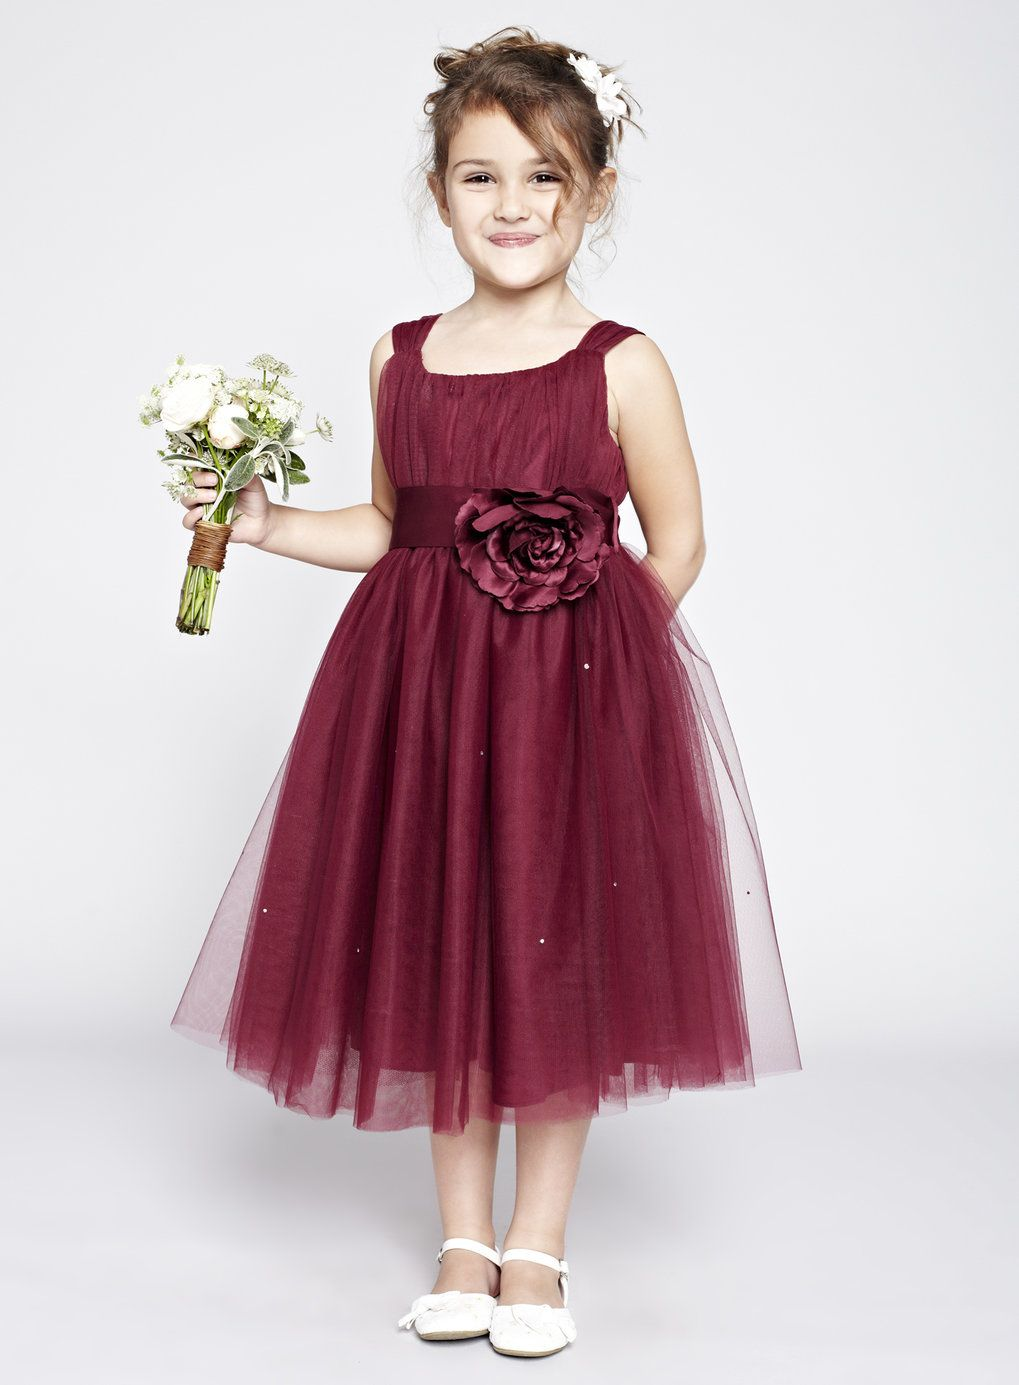 064d12271da flowergirl dress with flower detail - Google Search